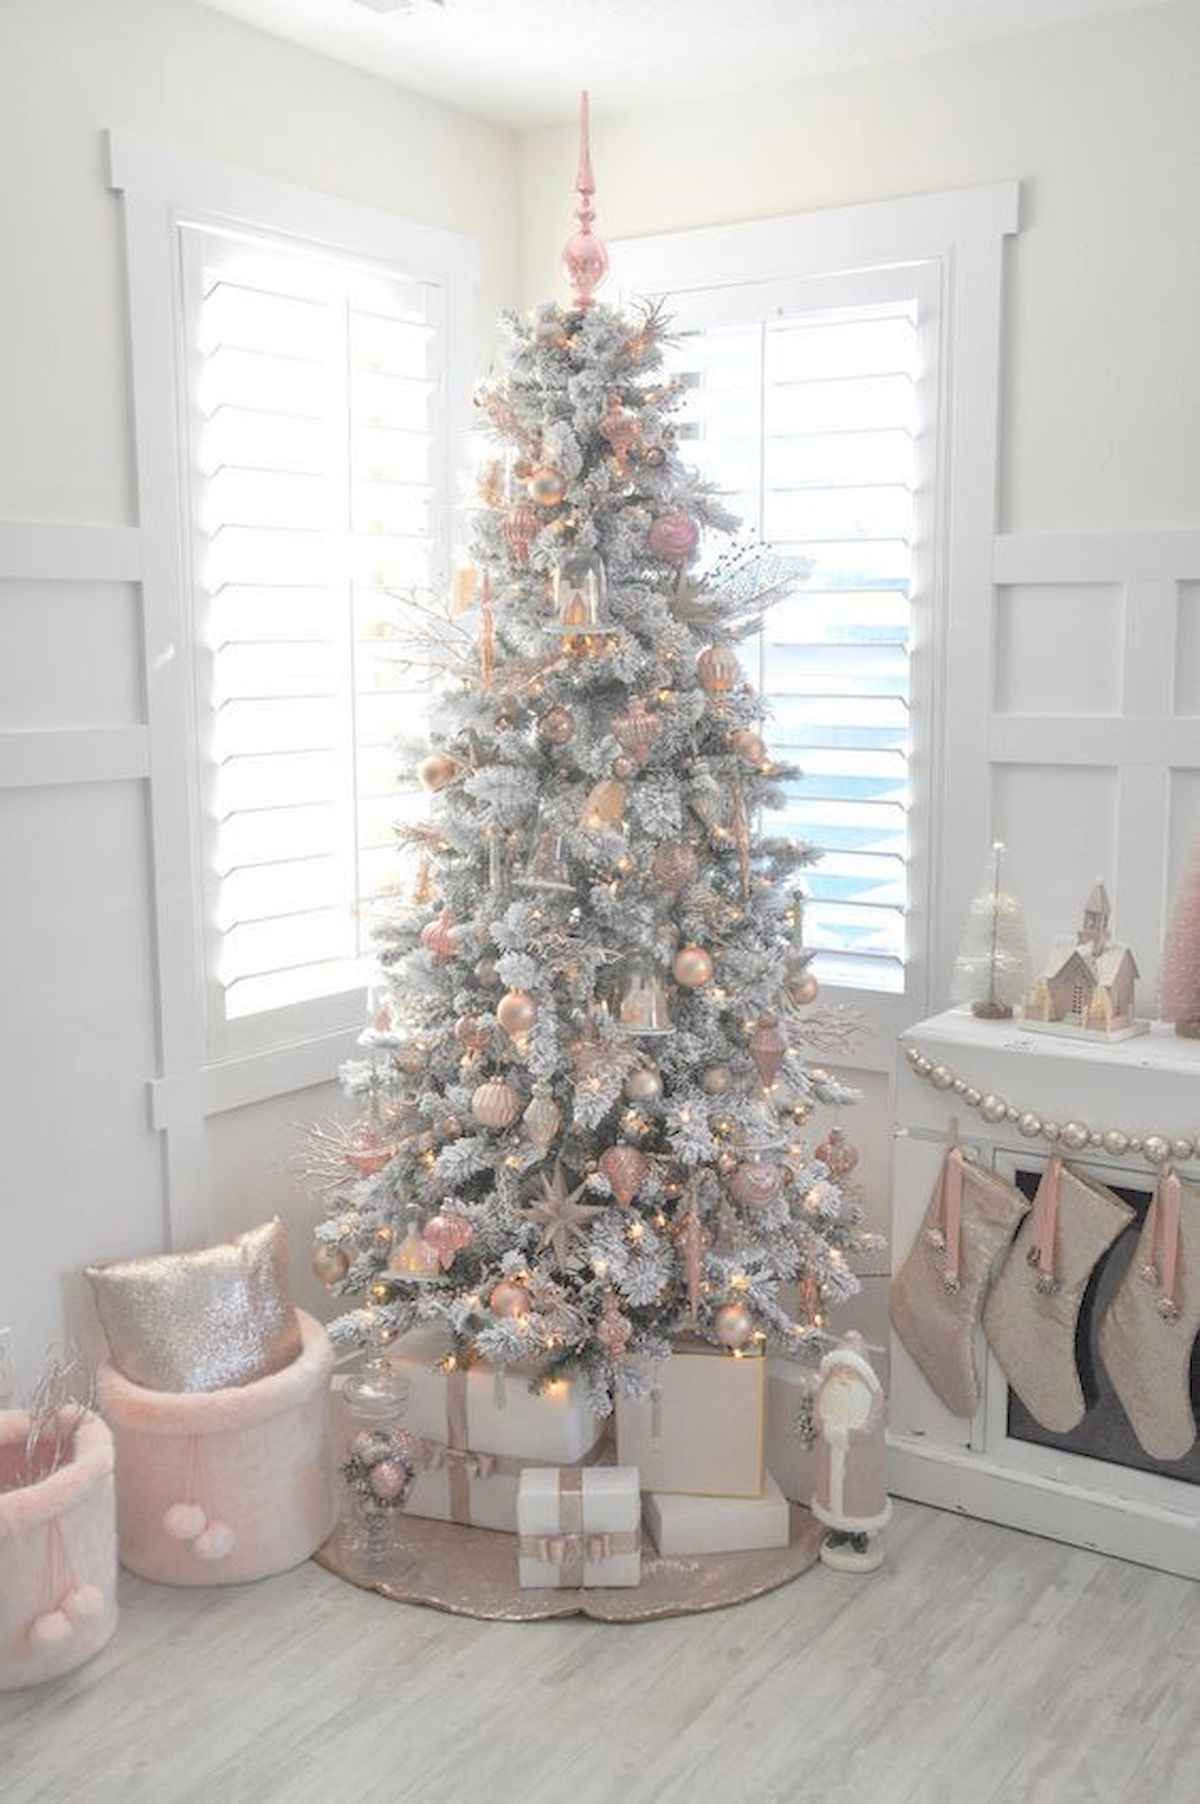 60 awesome christmas tree decorations ideas (27)